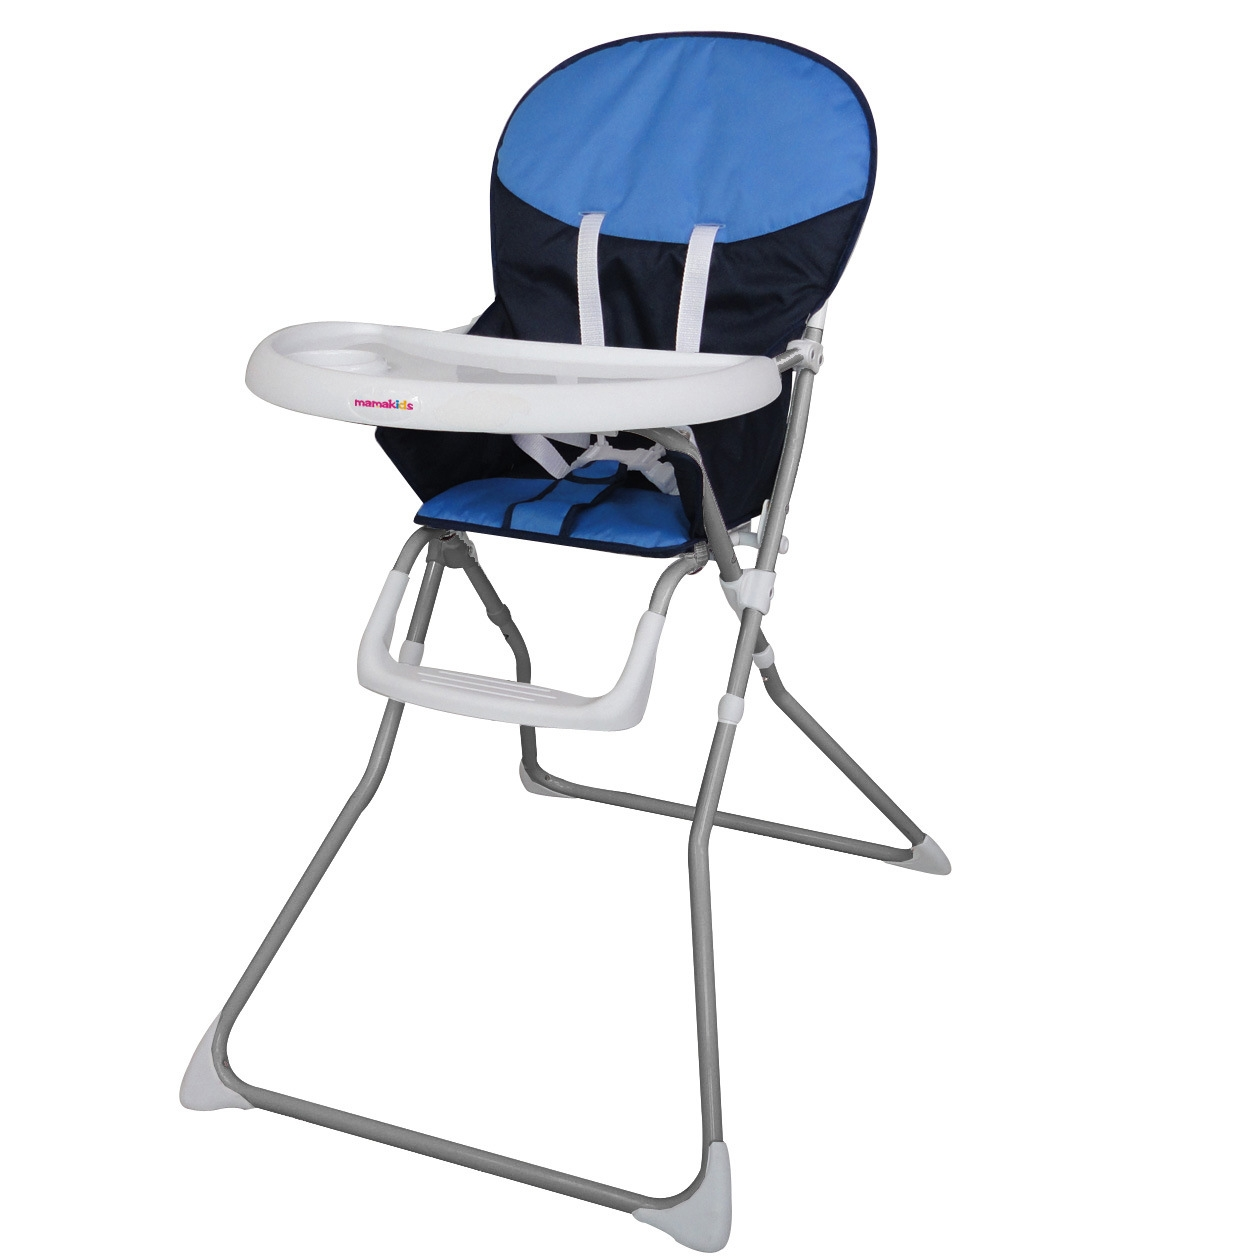 baby table and chairs desk chair rubber wheels mamakids pullbacks child carry dining high